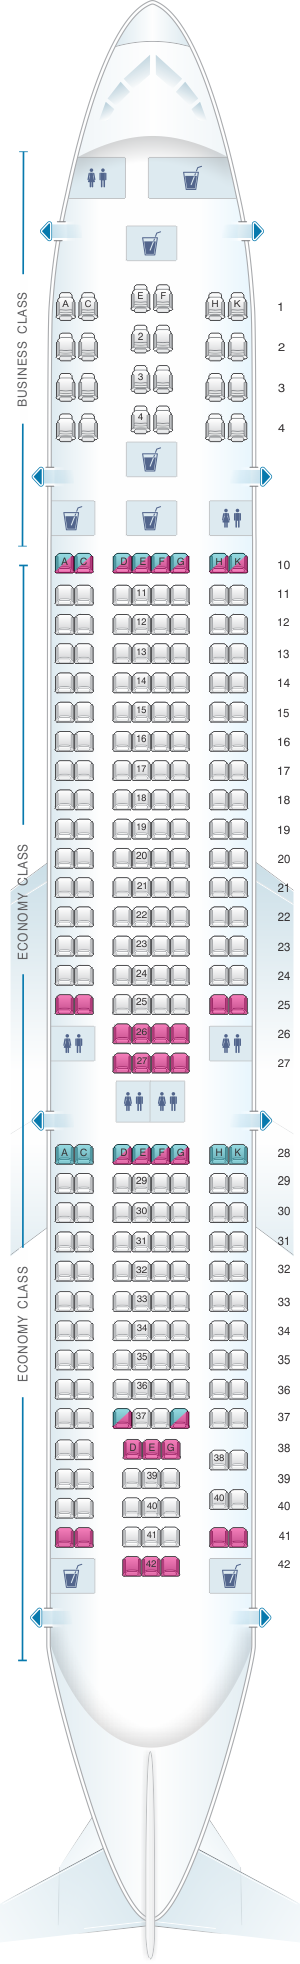 Seat map for TAP Air Portugal Airbus A330 200 V1